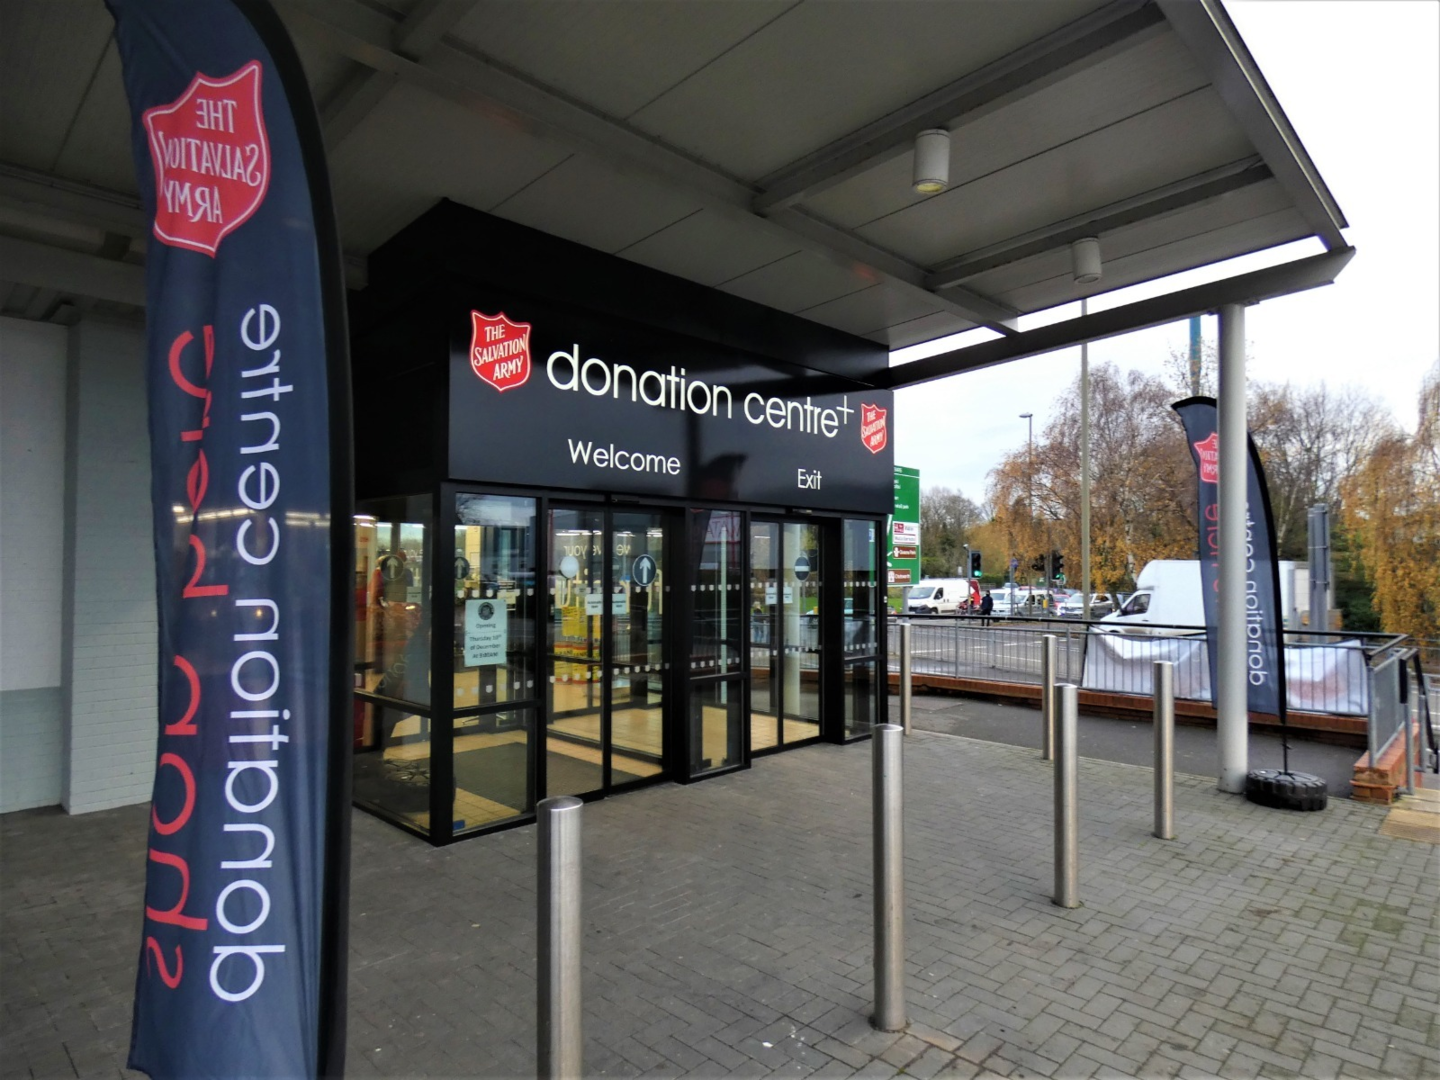 Chesterfield Donation centre